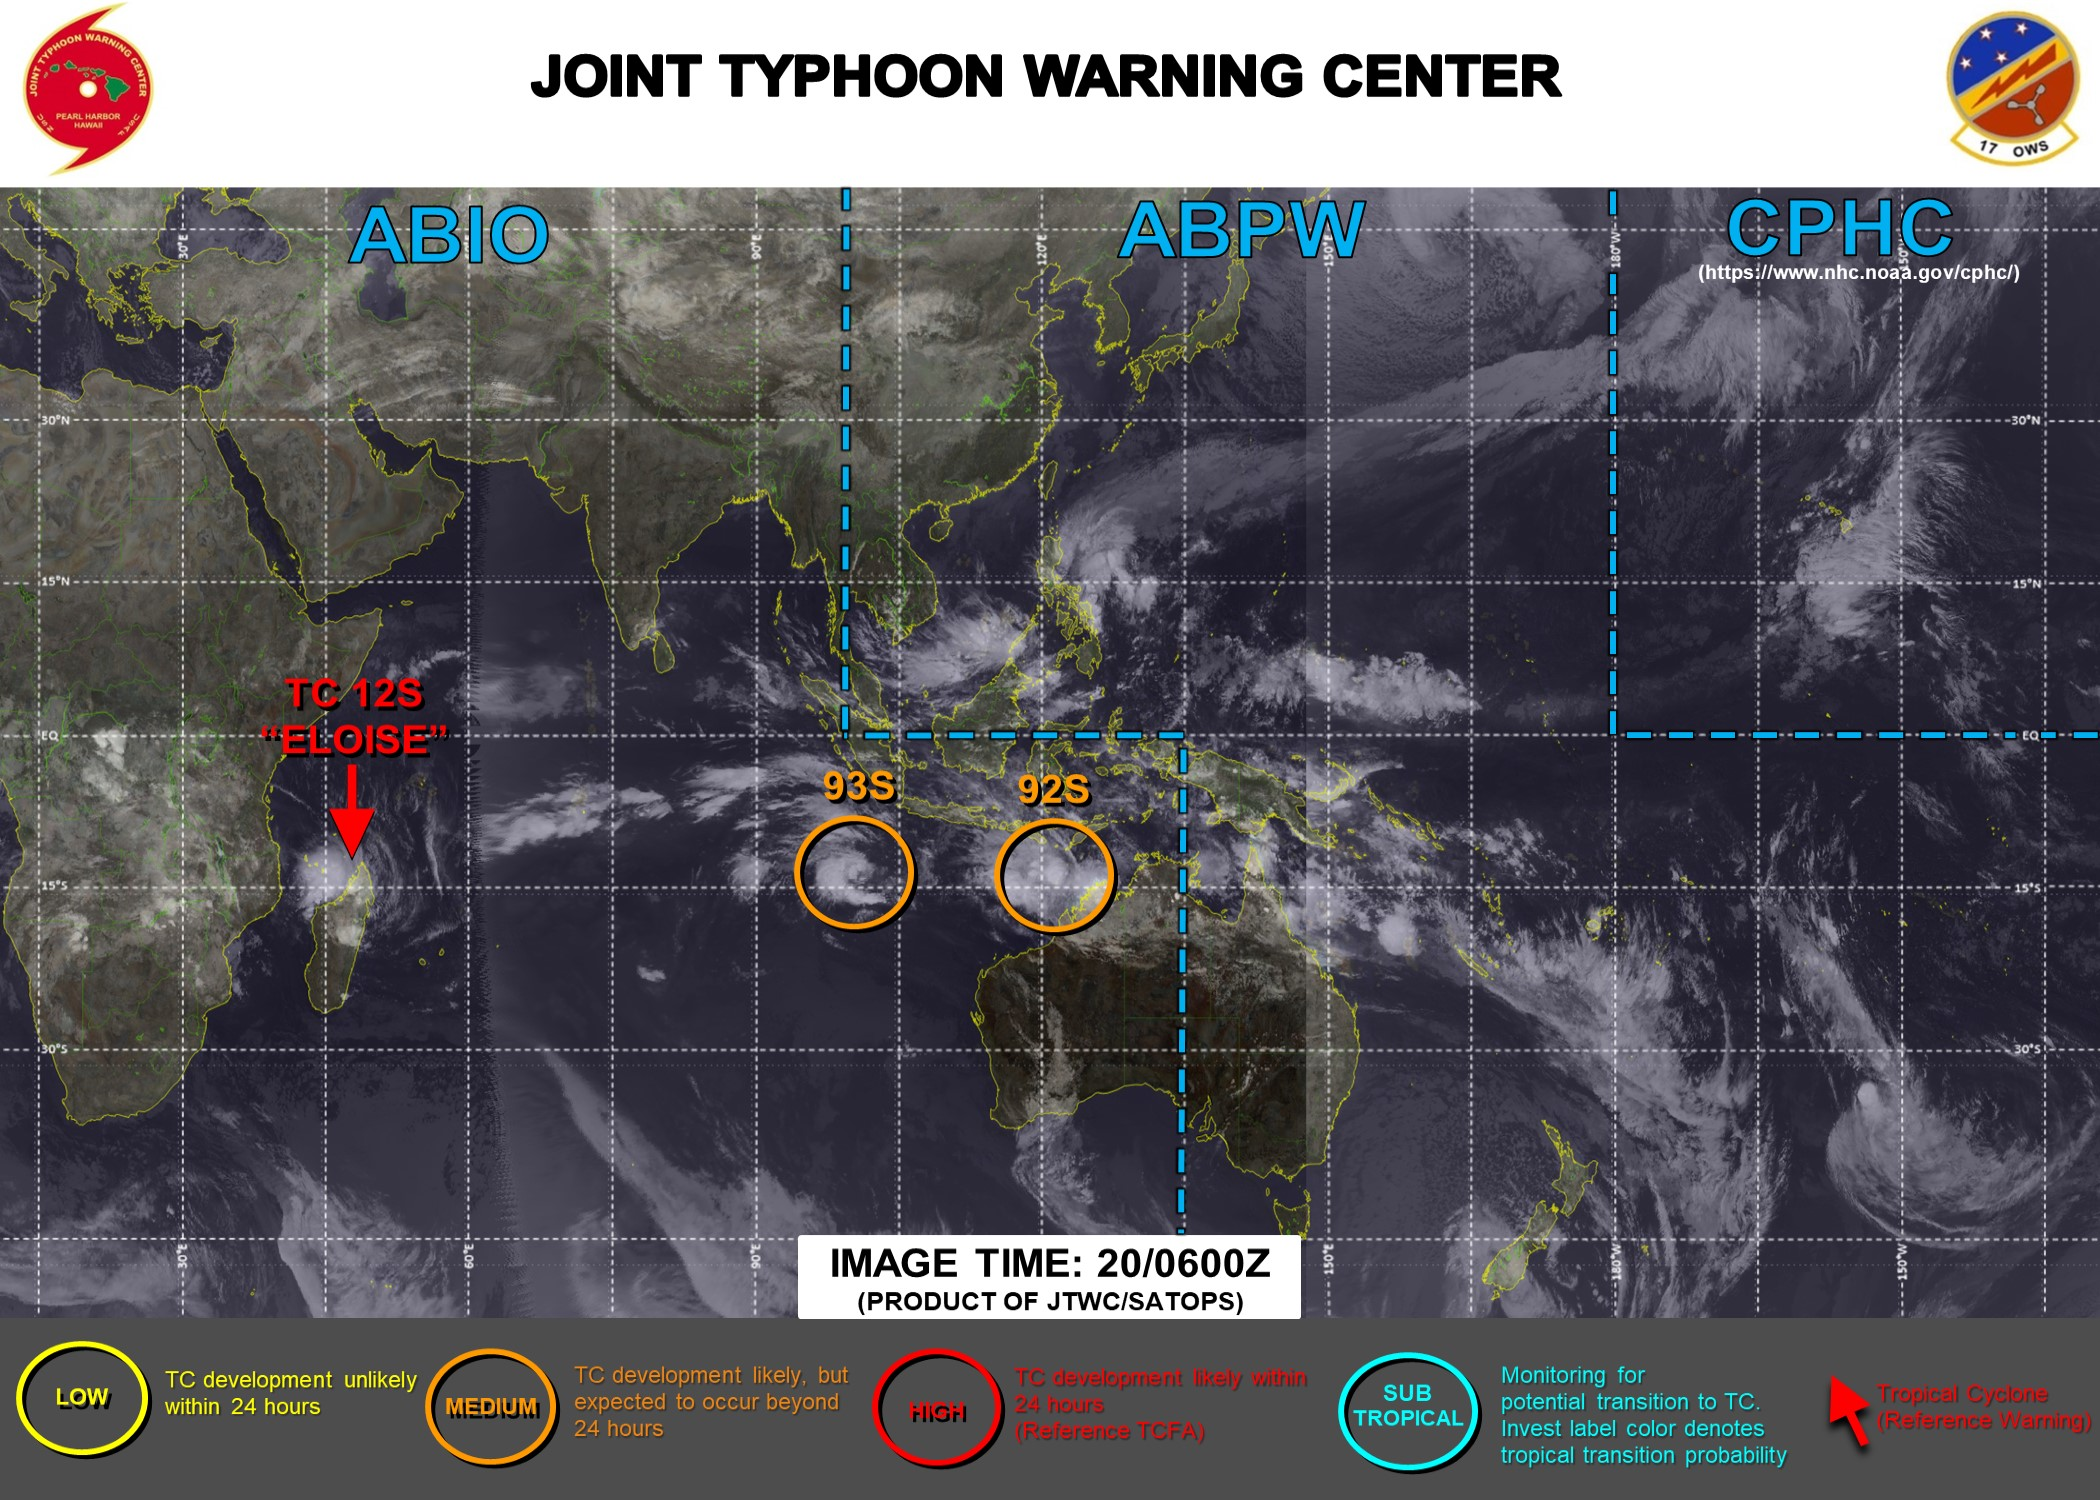 20/06UTC. THE JTWC IS ISSUING 12HOURLY WARNINGS ON 12S(ELOISE) ALONG WITH 3HOURLY SATELLITE BULLETINS ON 12S AND INVEST 93S. INVEST 92S &93S ARE UNDER CLOSE WATCH.